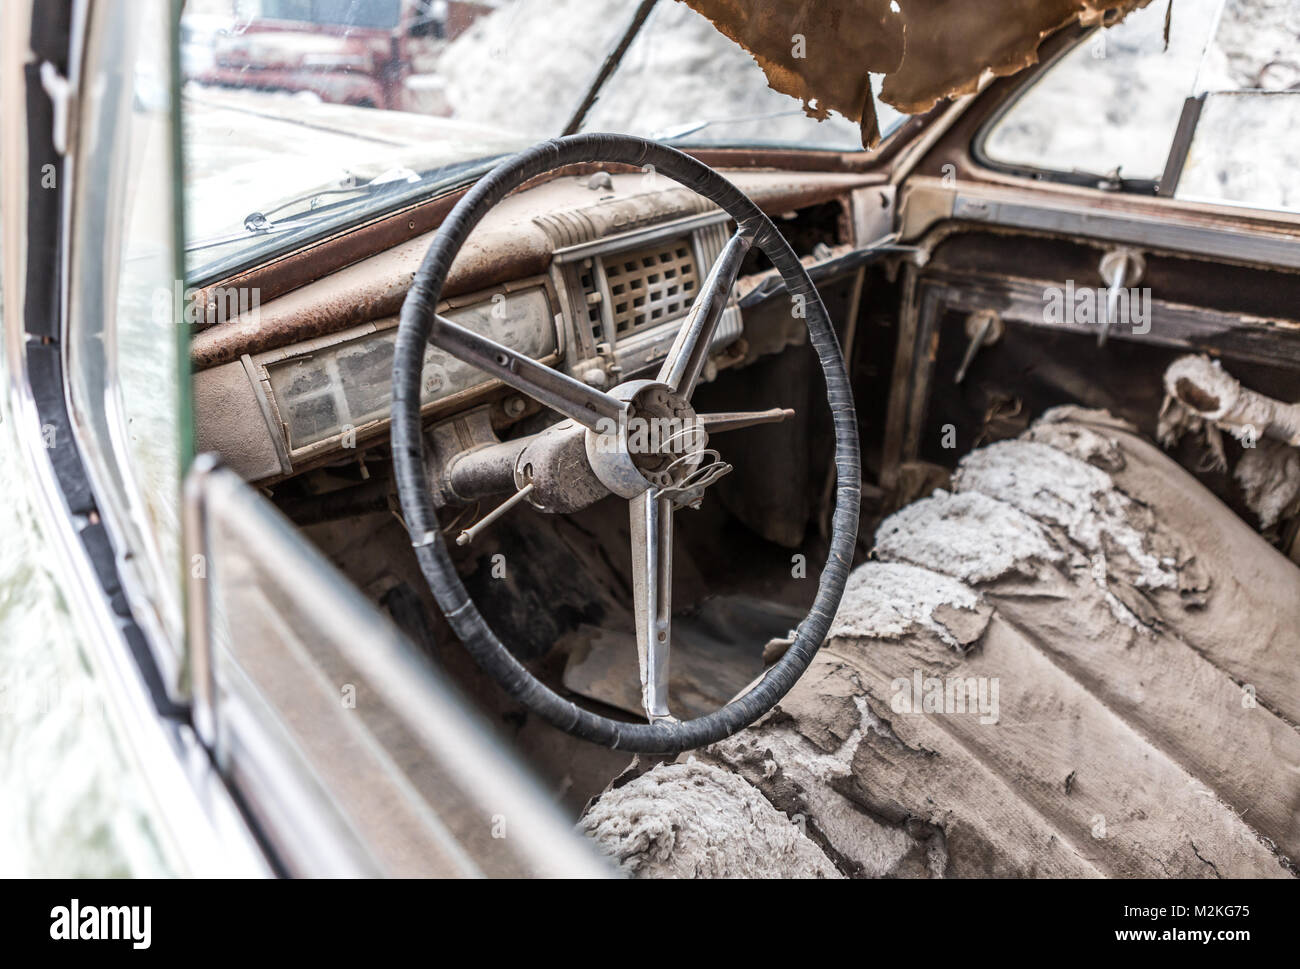 old rusty truck interior stock photos old rusty truck interior stock images alamy. Black Bedroom Furniture Sets. Home Design Ideas